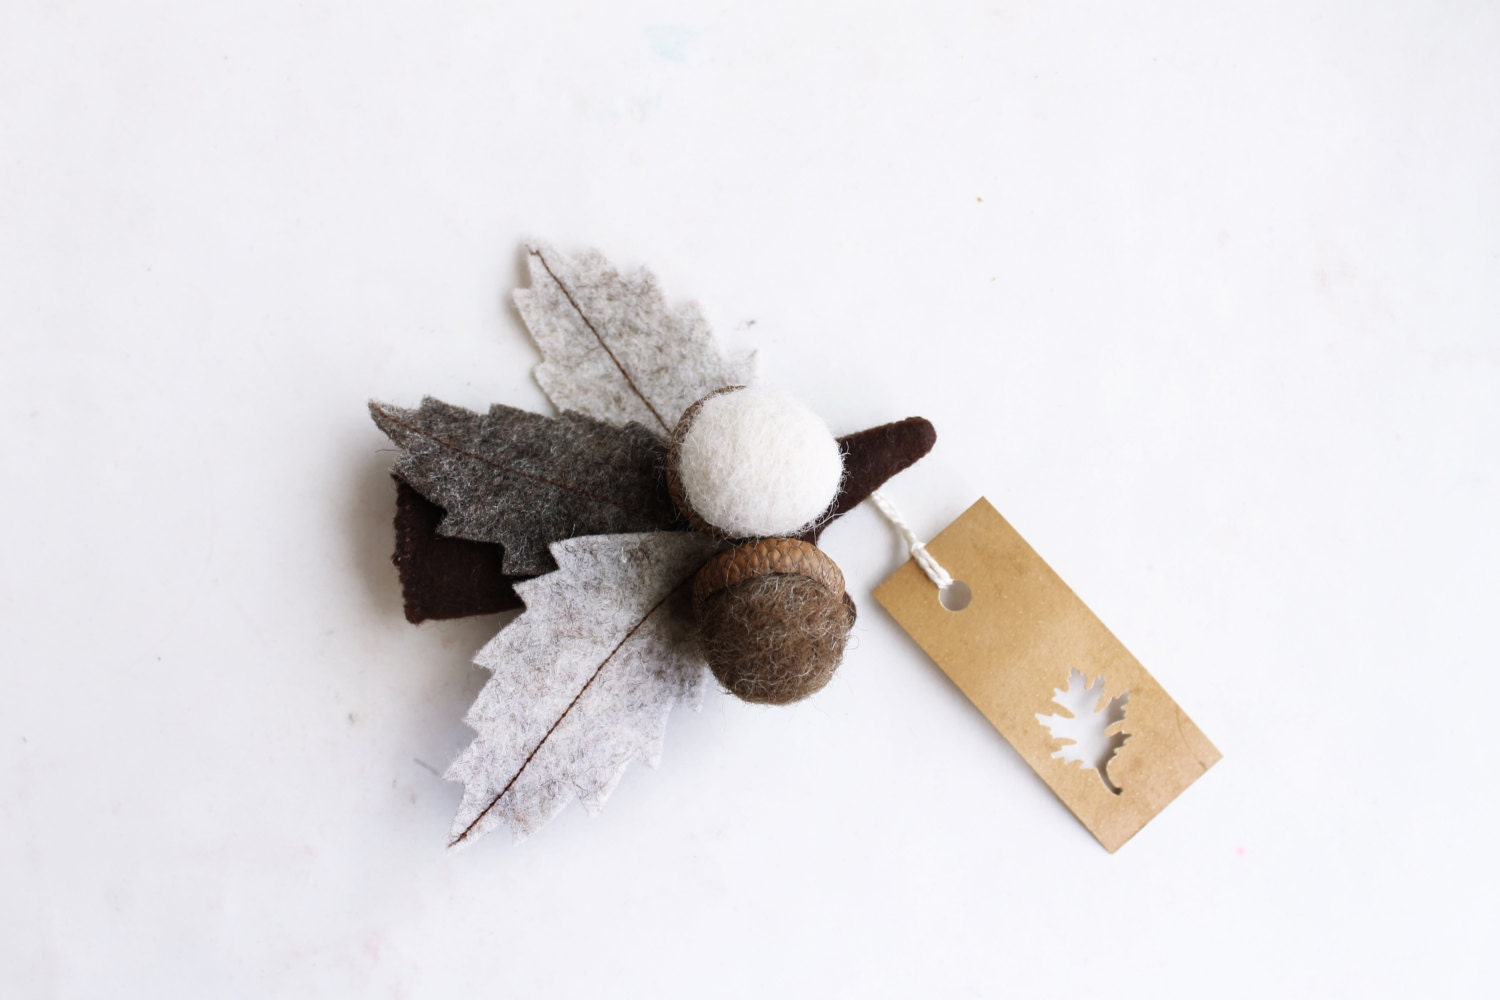 Autumn brooch, leaves with acorns in brown tones, branch oak. - Intres